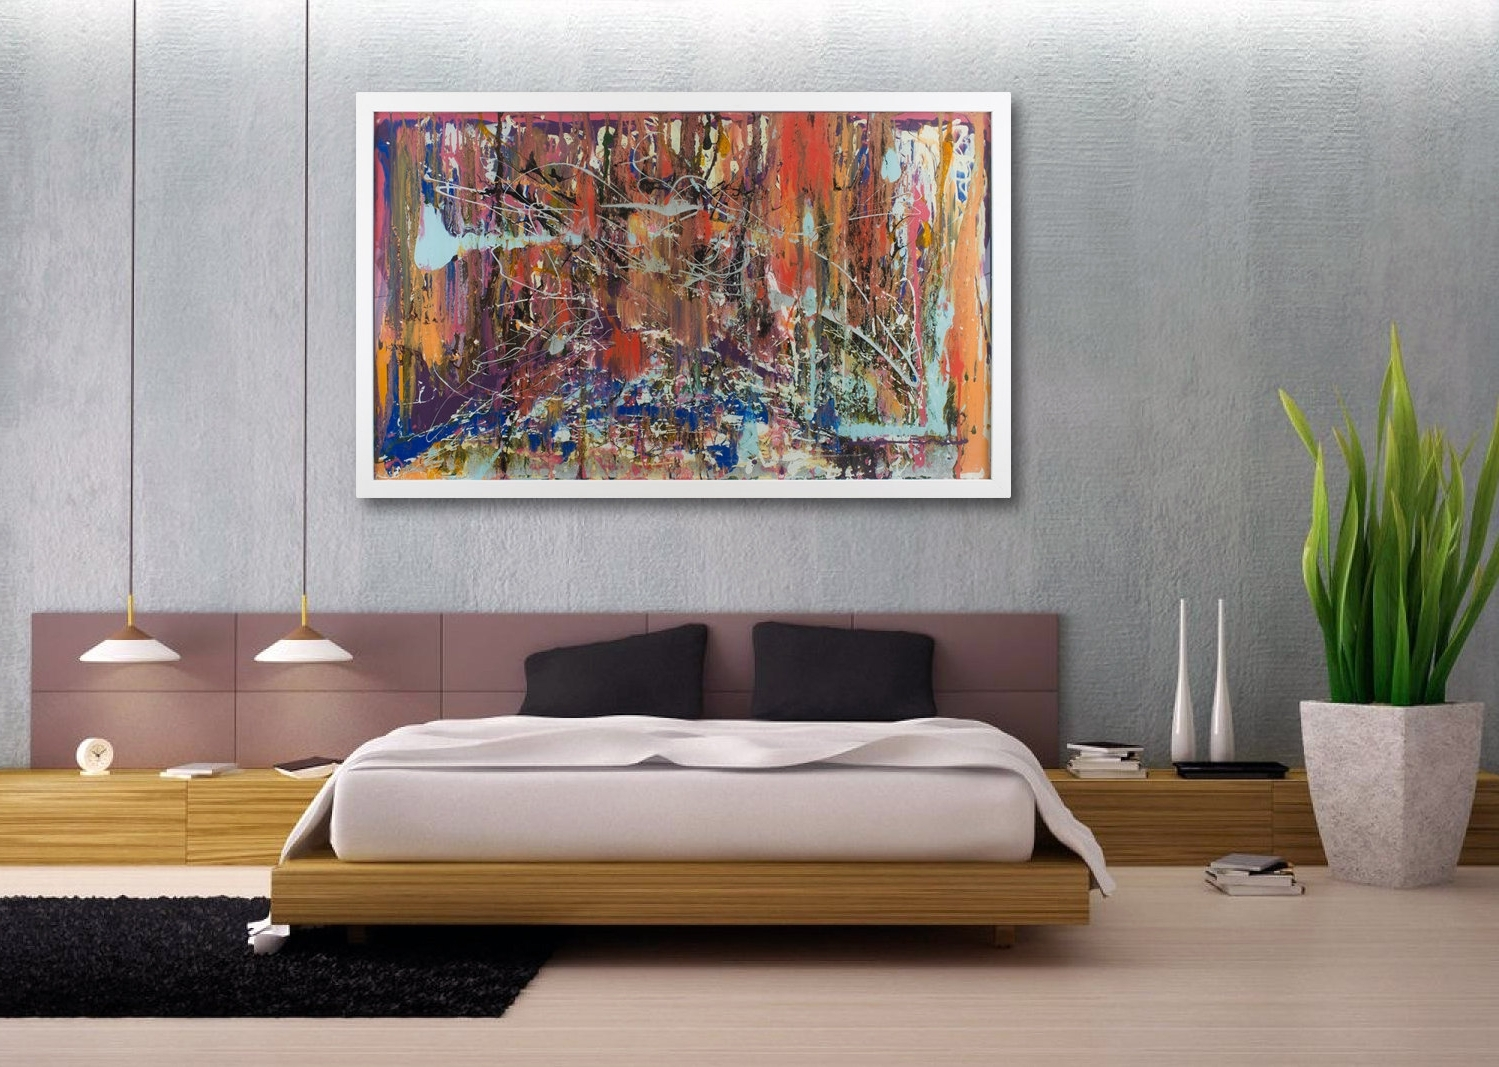 Widely Used Large Framed Abstract Wall Art Pertaining To Innovative Way Modern Wall Decor Room — Joanne Russo Homesjoanne (View 15 of 15)